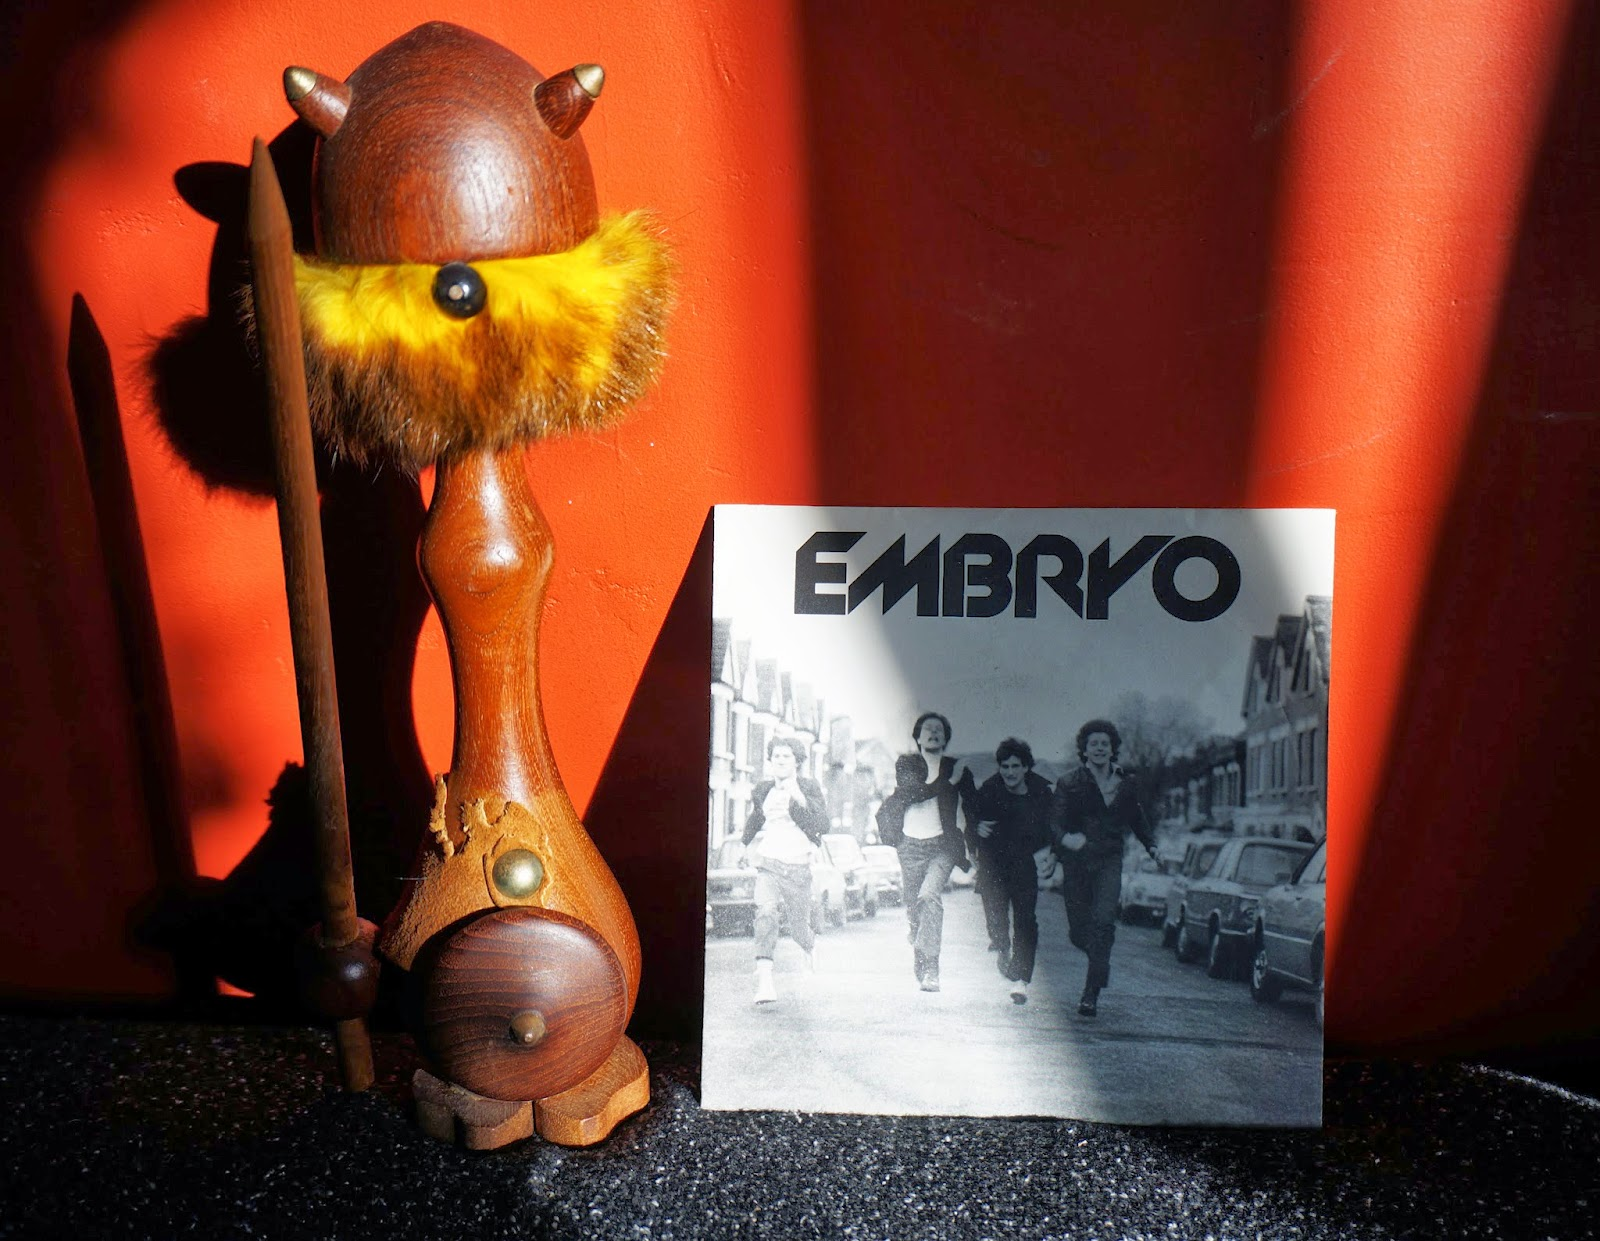 http://crazeegirlsound.blogspot.fr/2014/03/embryo-you-know-he-did-im-different-1980.html